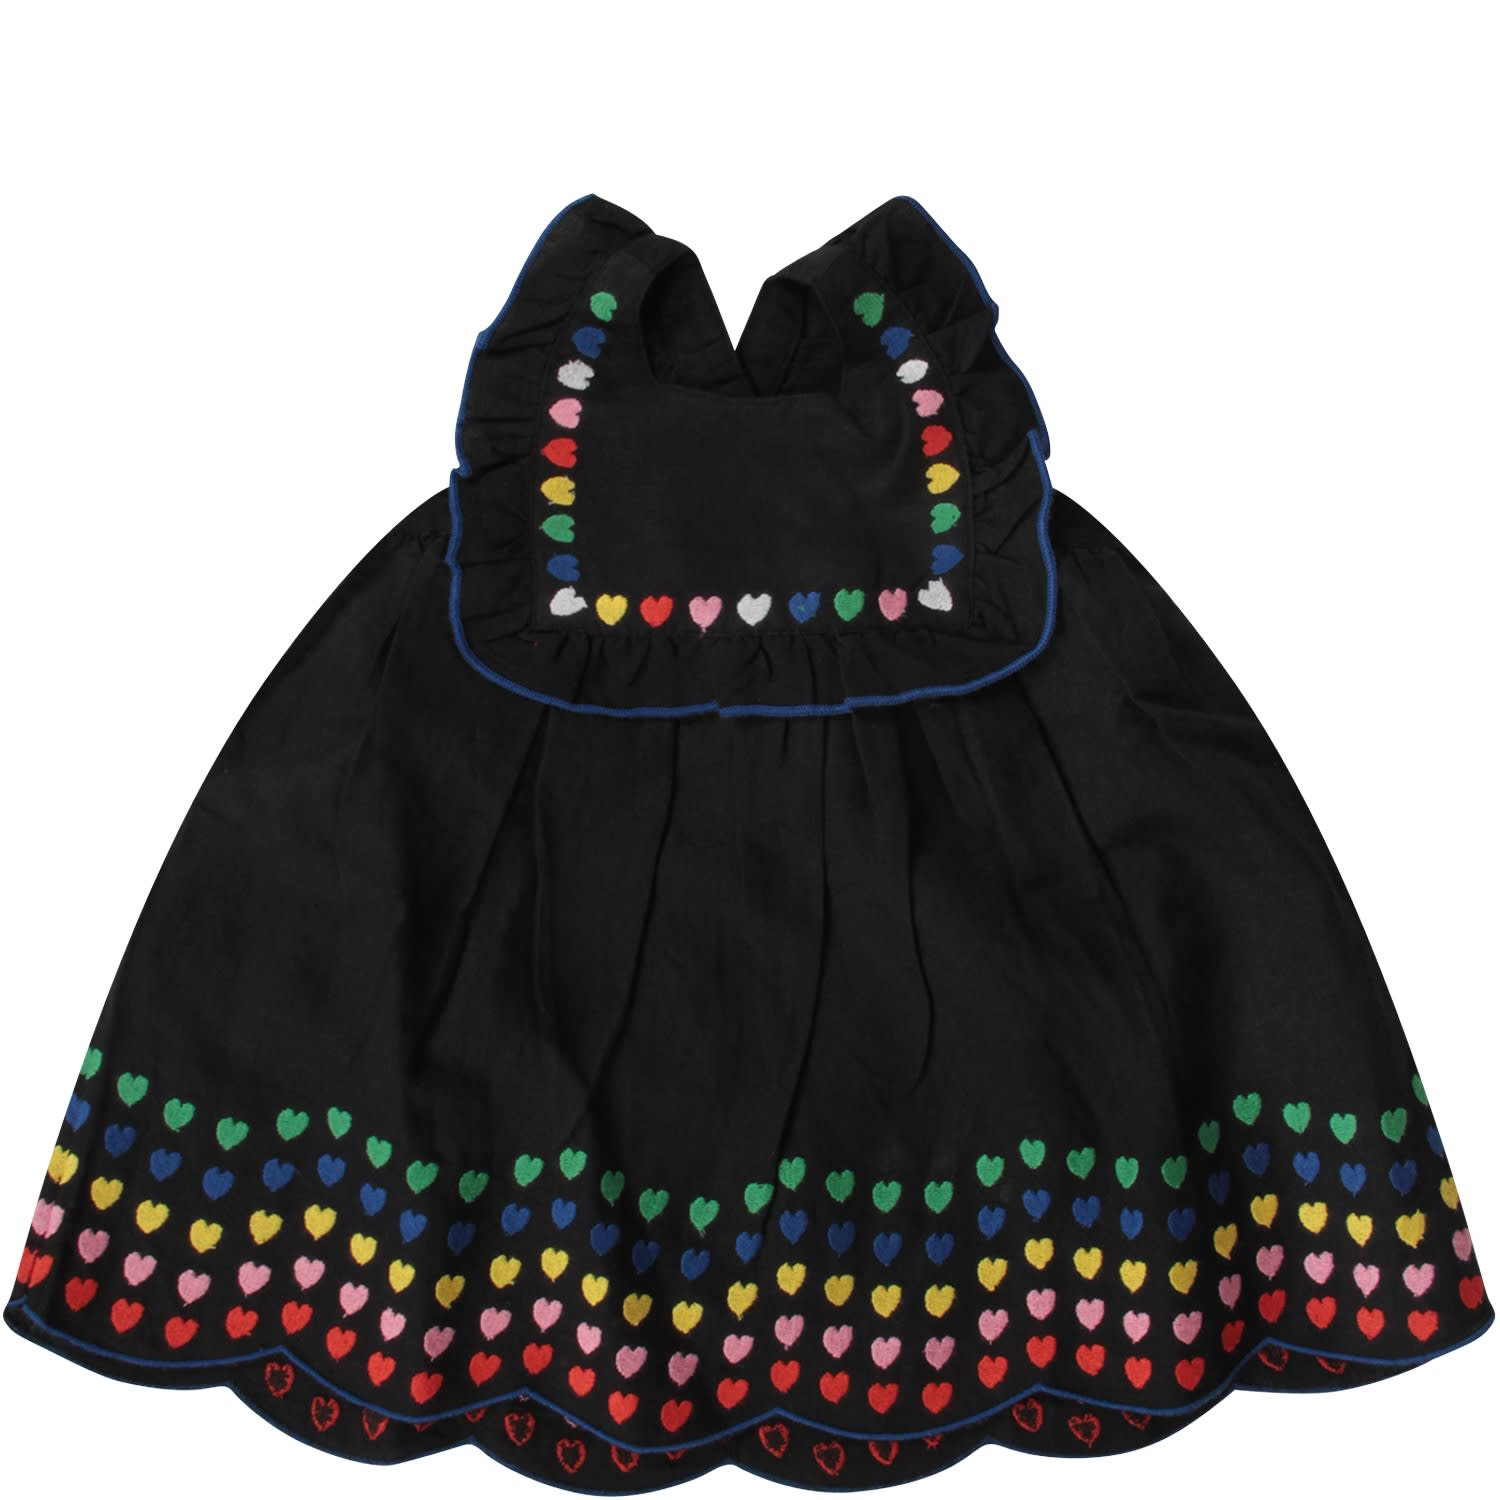 Buy Stella McCartney Kids Black Dress With Colorful Hearts For Baby Girl online, shop Stella McCartney Kids with free shipping